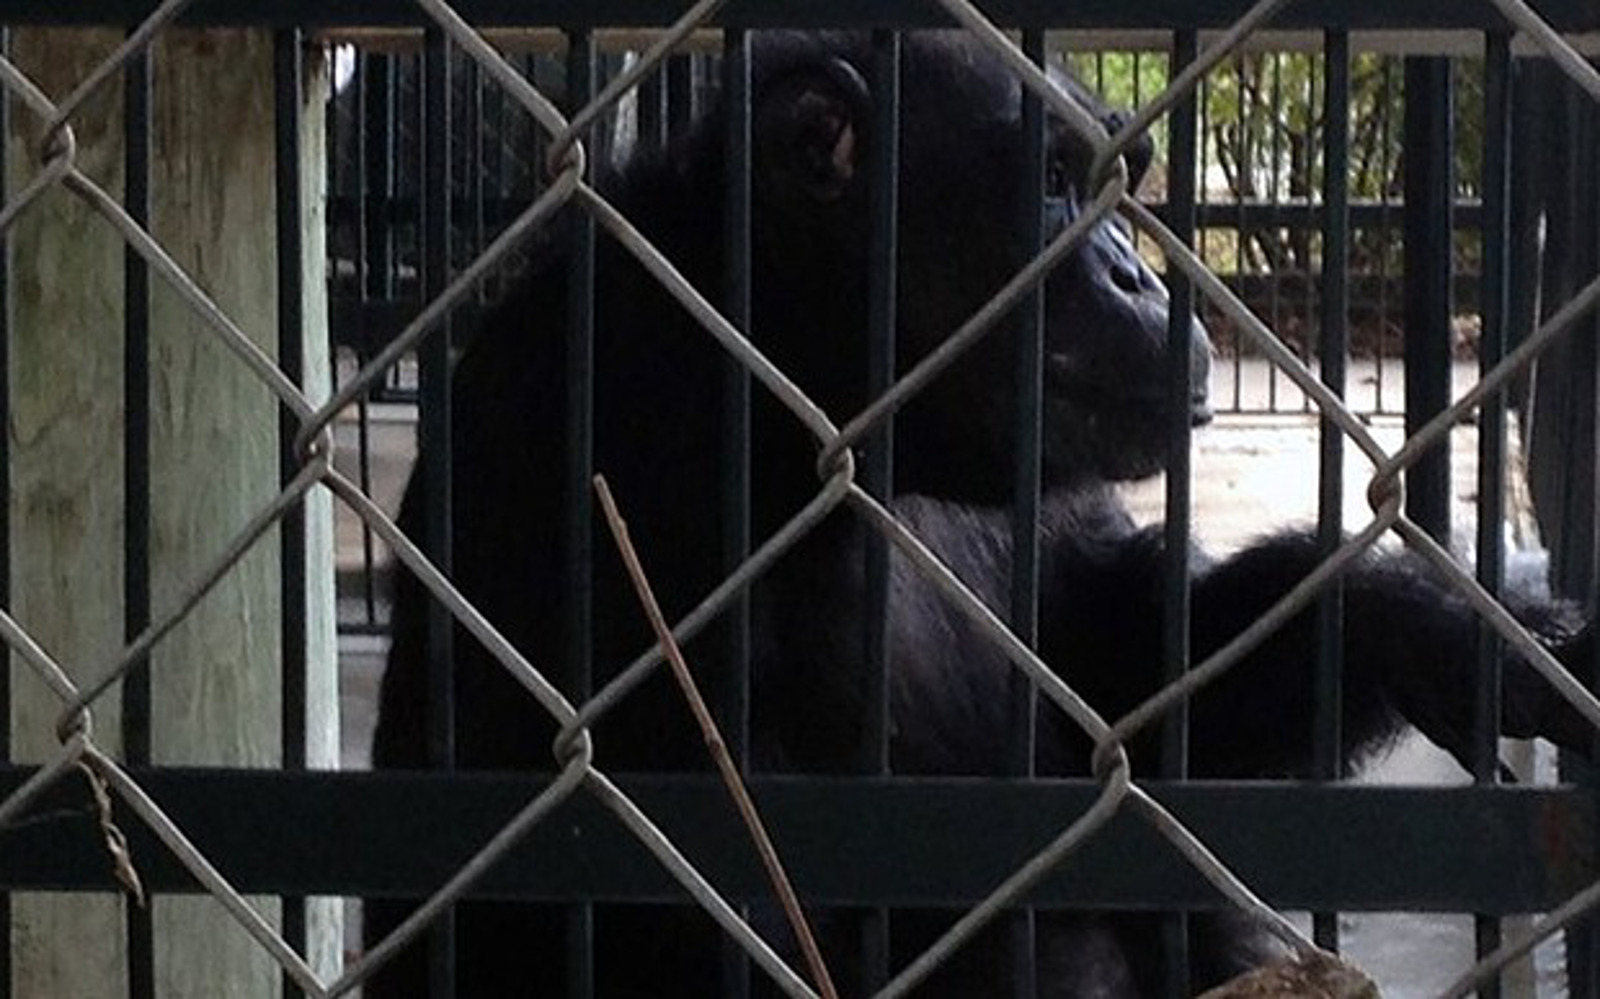 The listing of captive chimpanzees as endangered created legal grounds for ALDF to file suit on Candy's behalf.